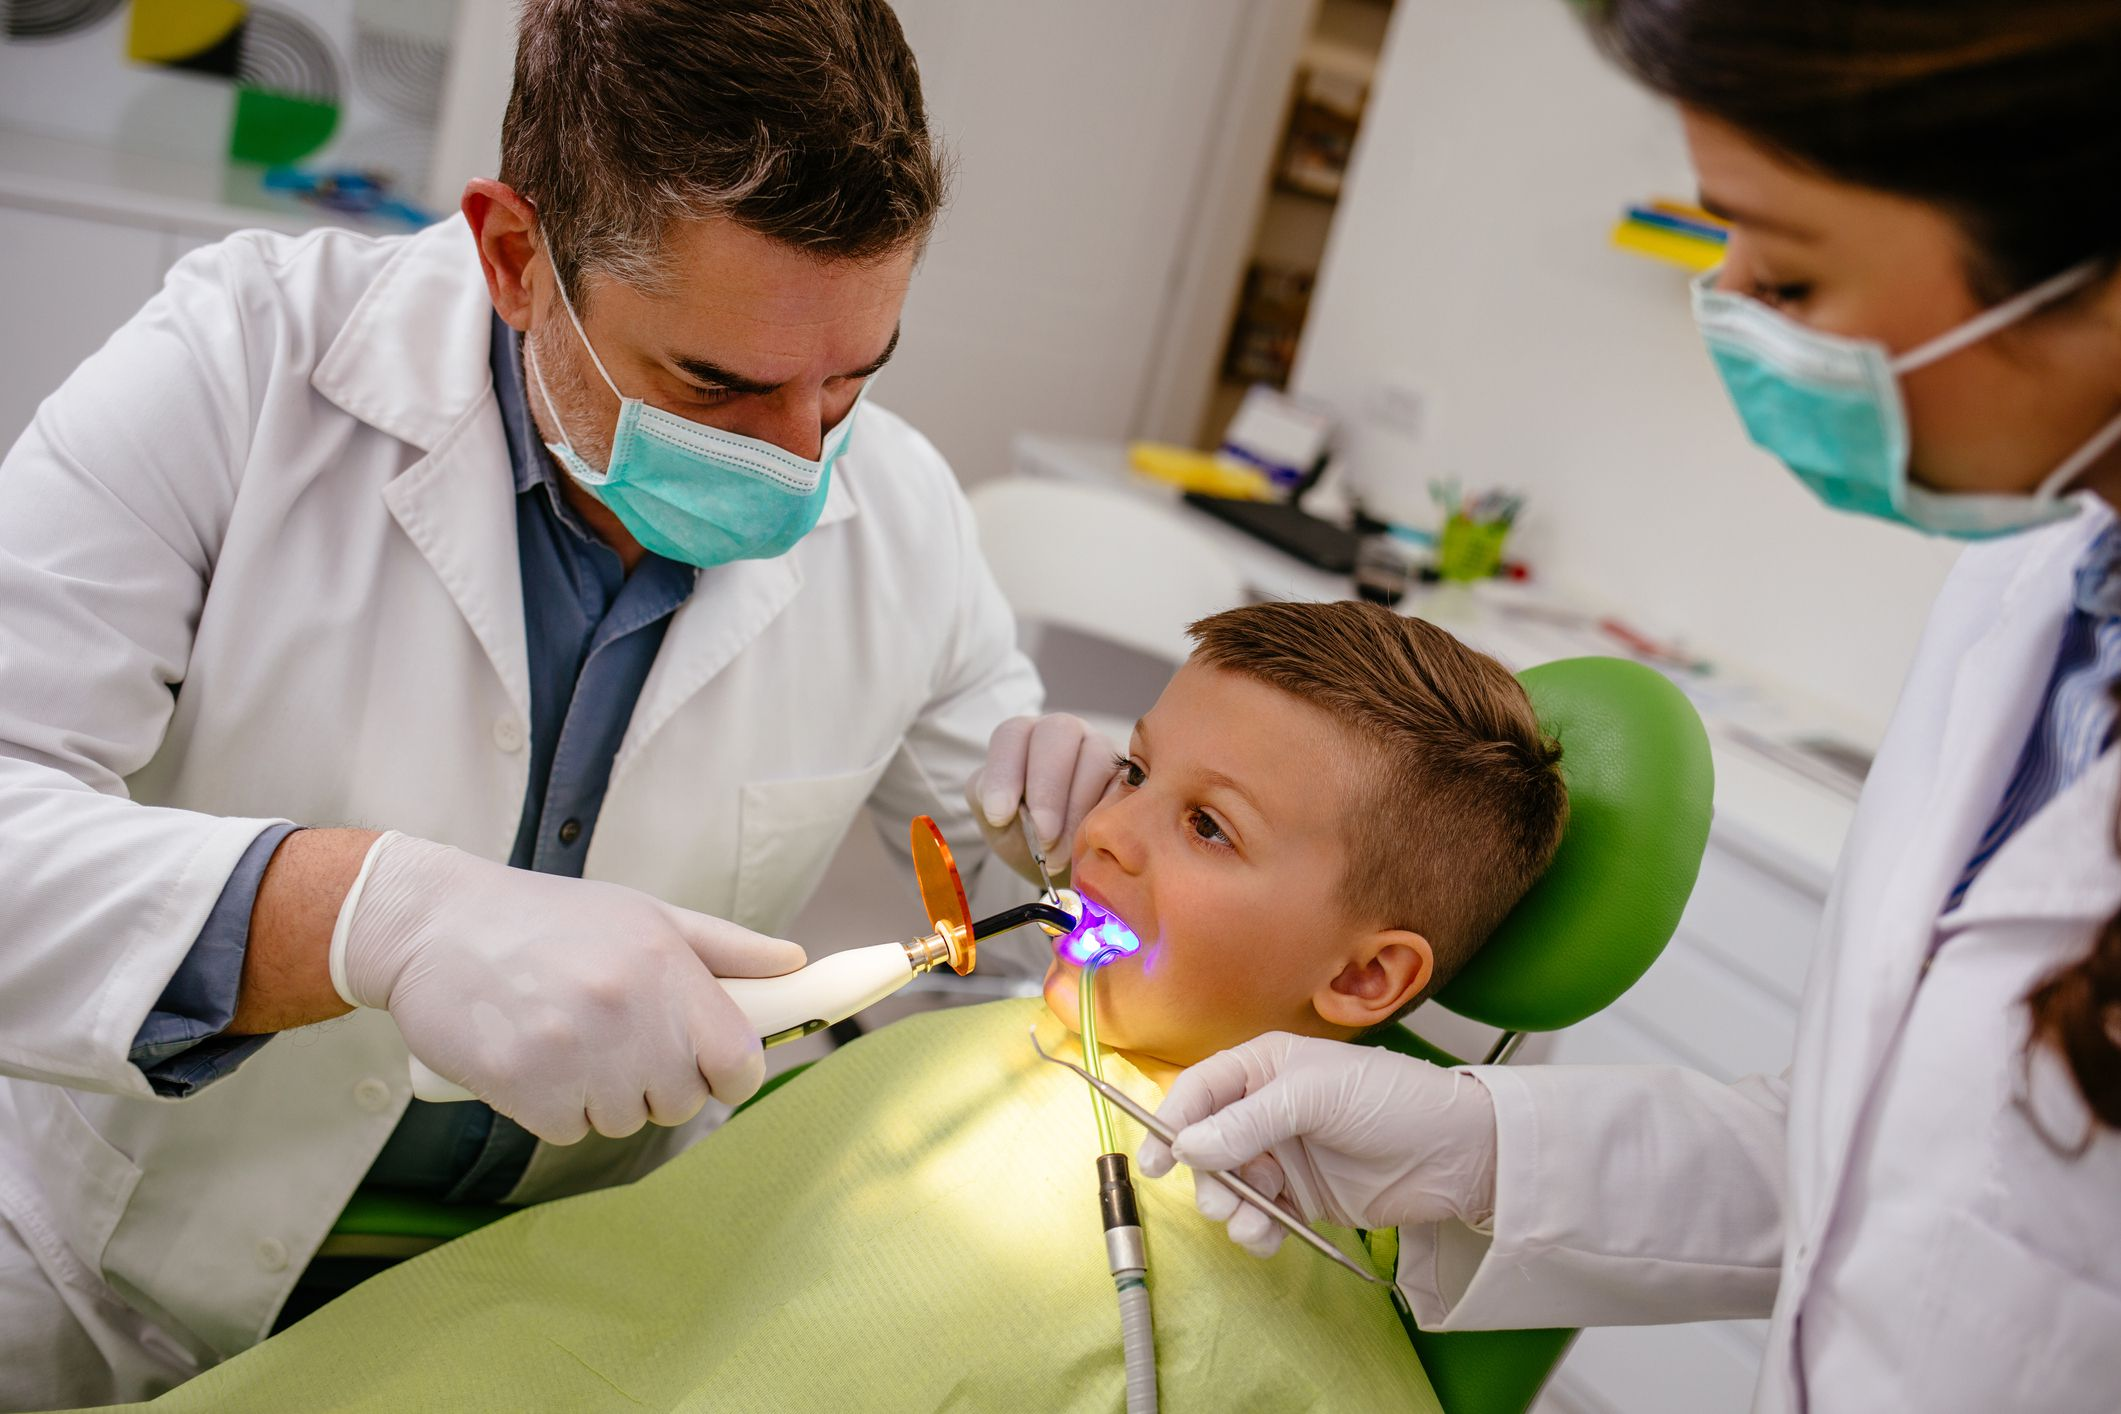 Dentist Career Overview and Salary Information